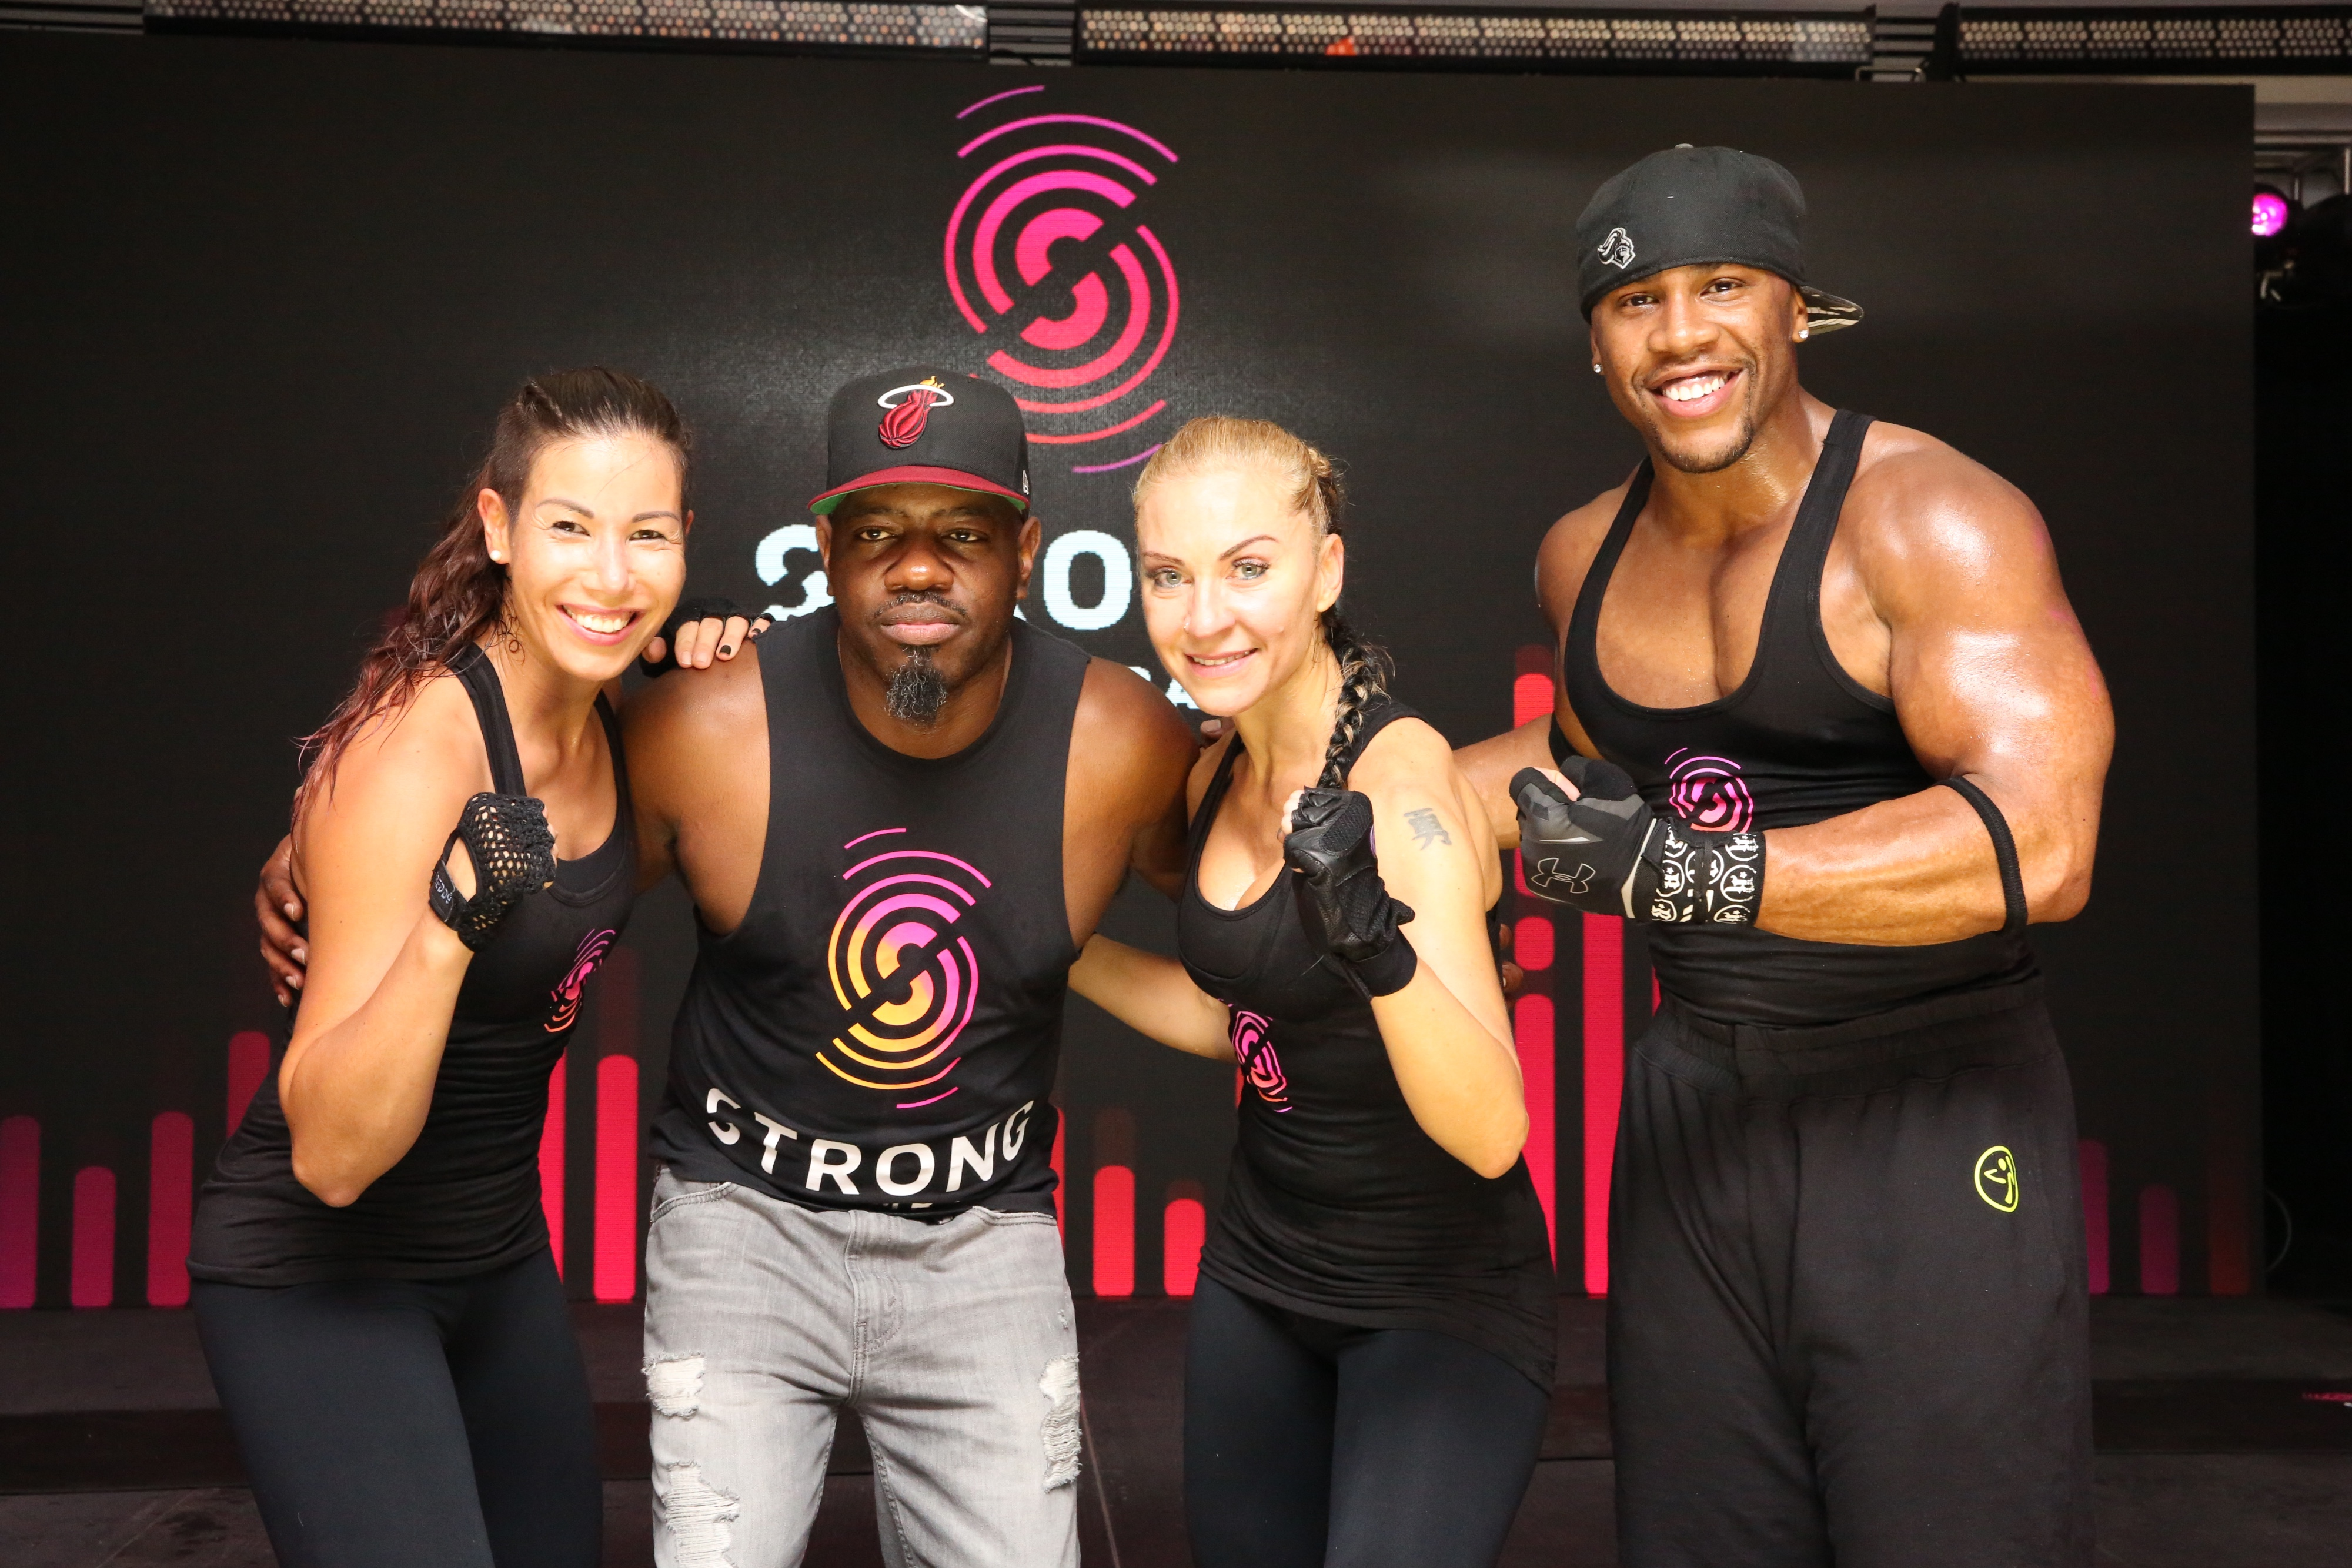 The STRONG by Zumba crew.